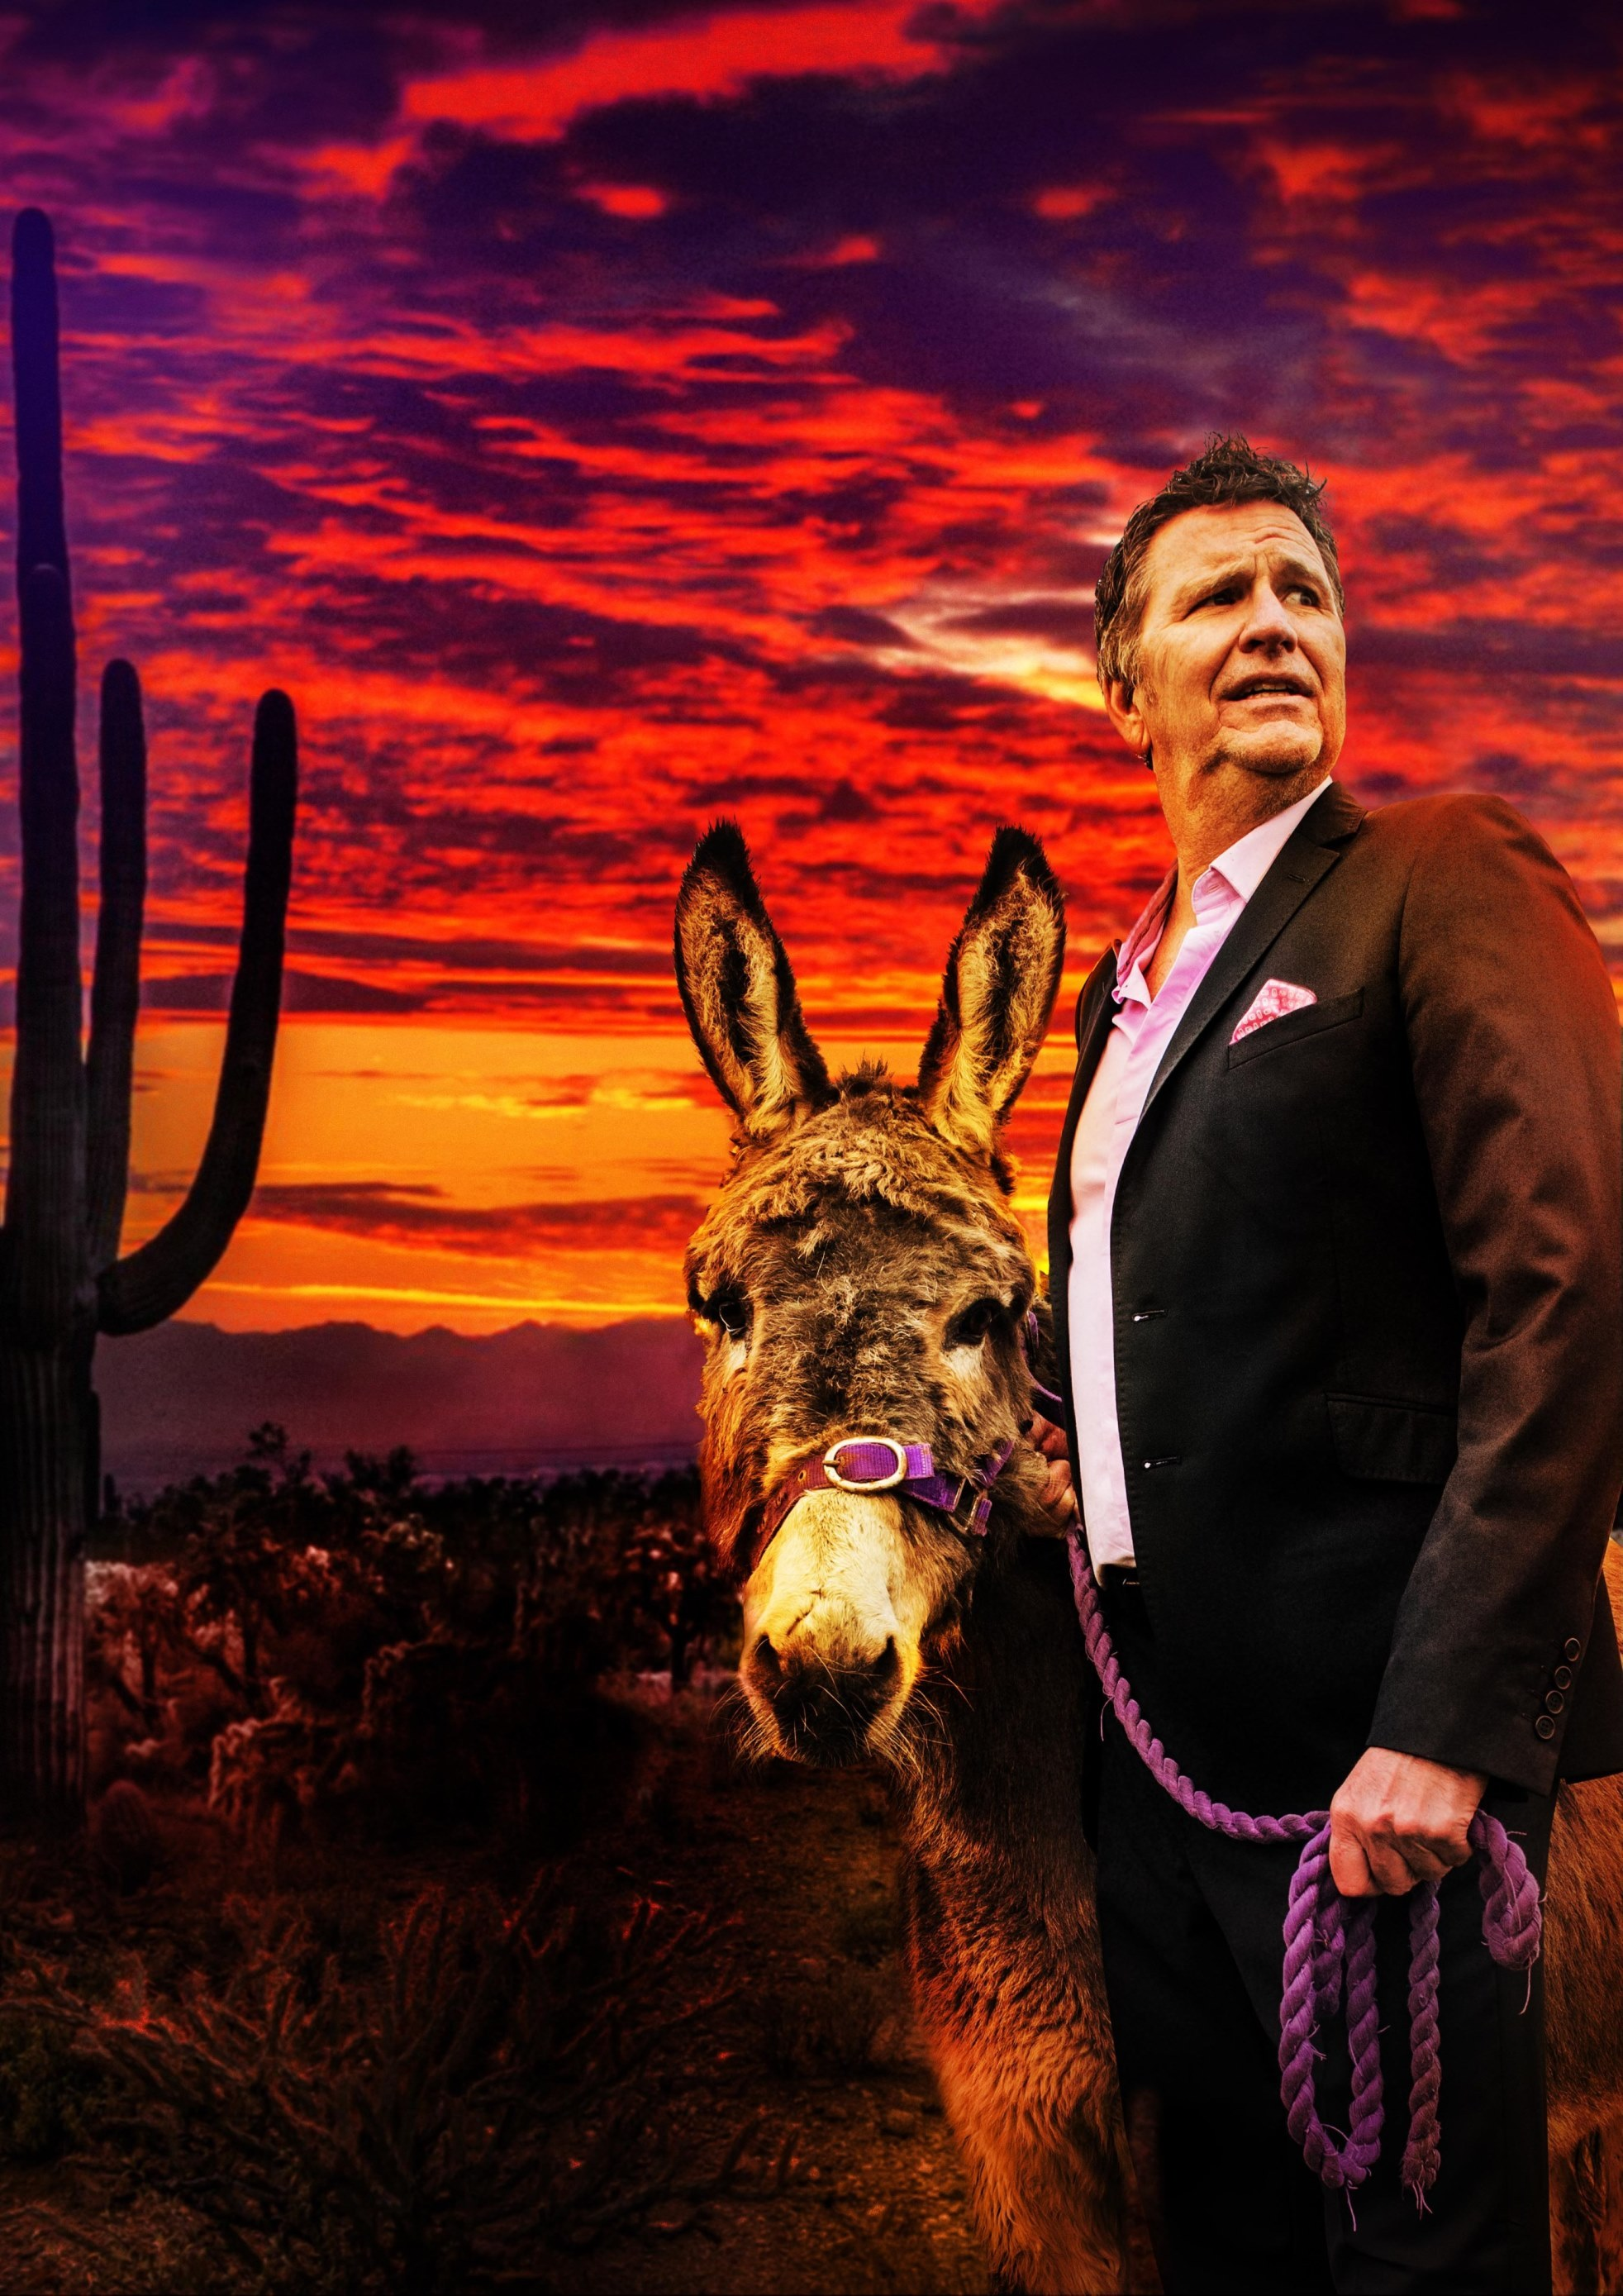 Off into the punset: Stewart Francis on his farewell tour